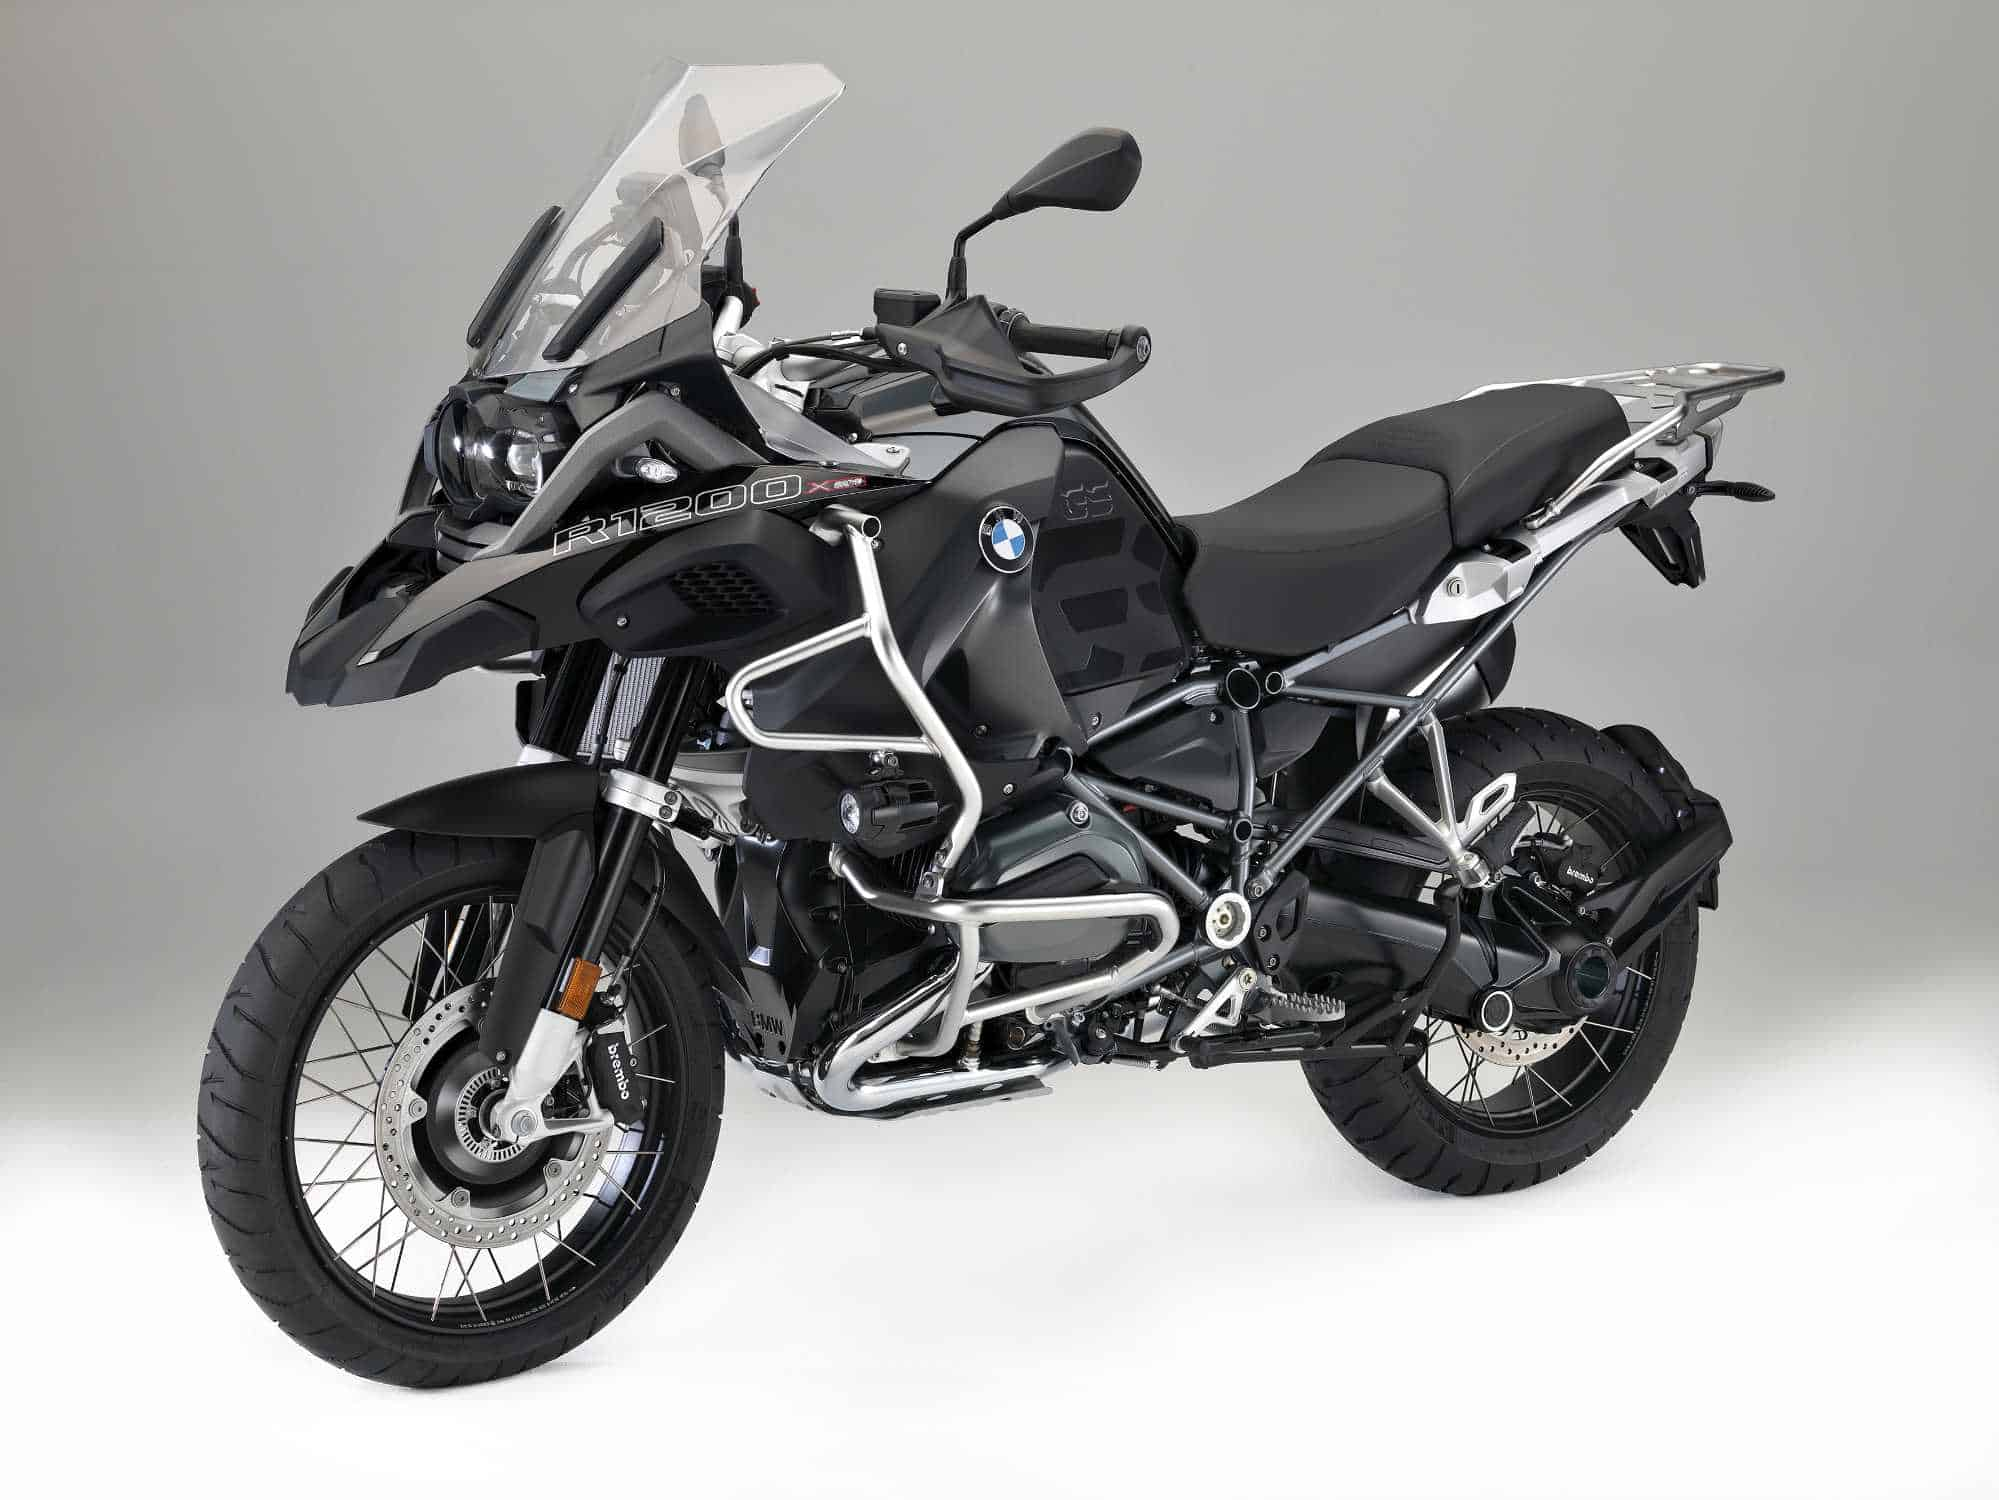 BMW R 1200 GS – dual sport motorcycle